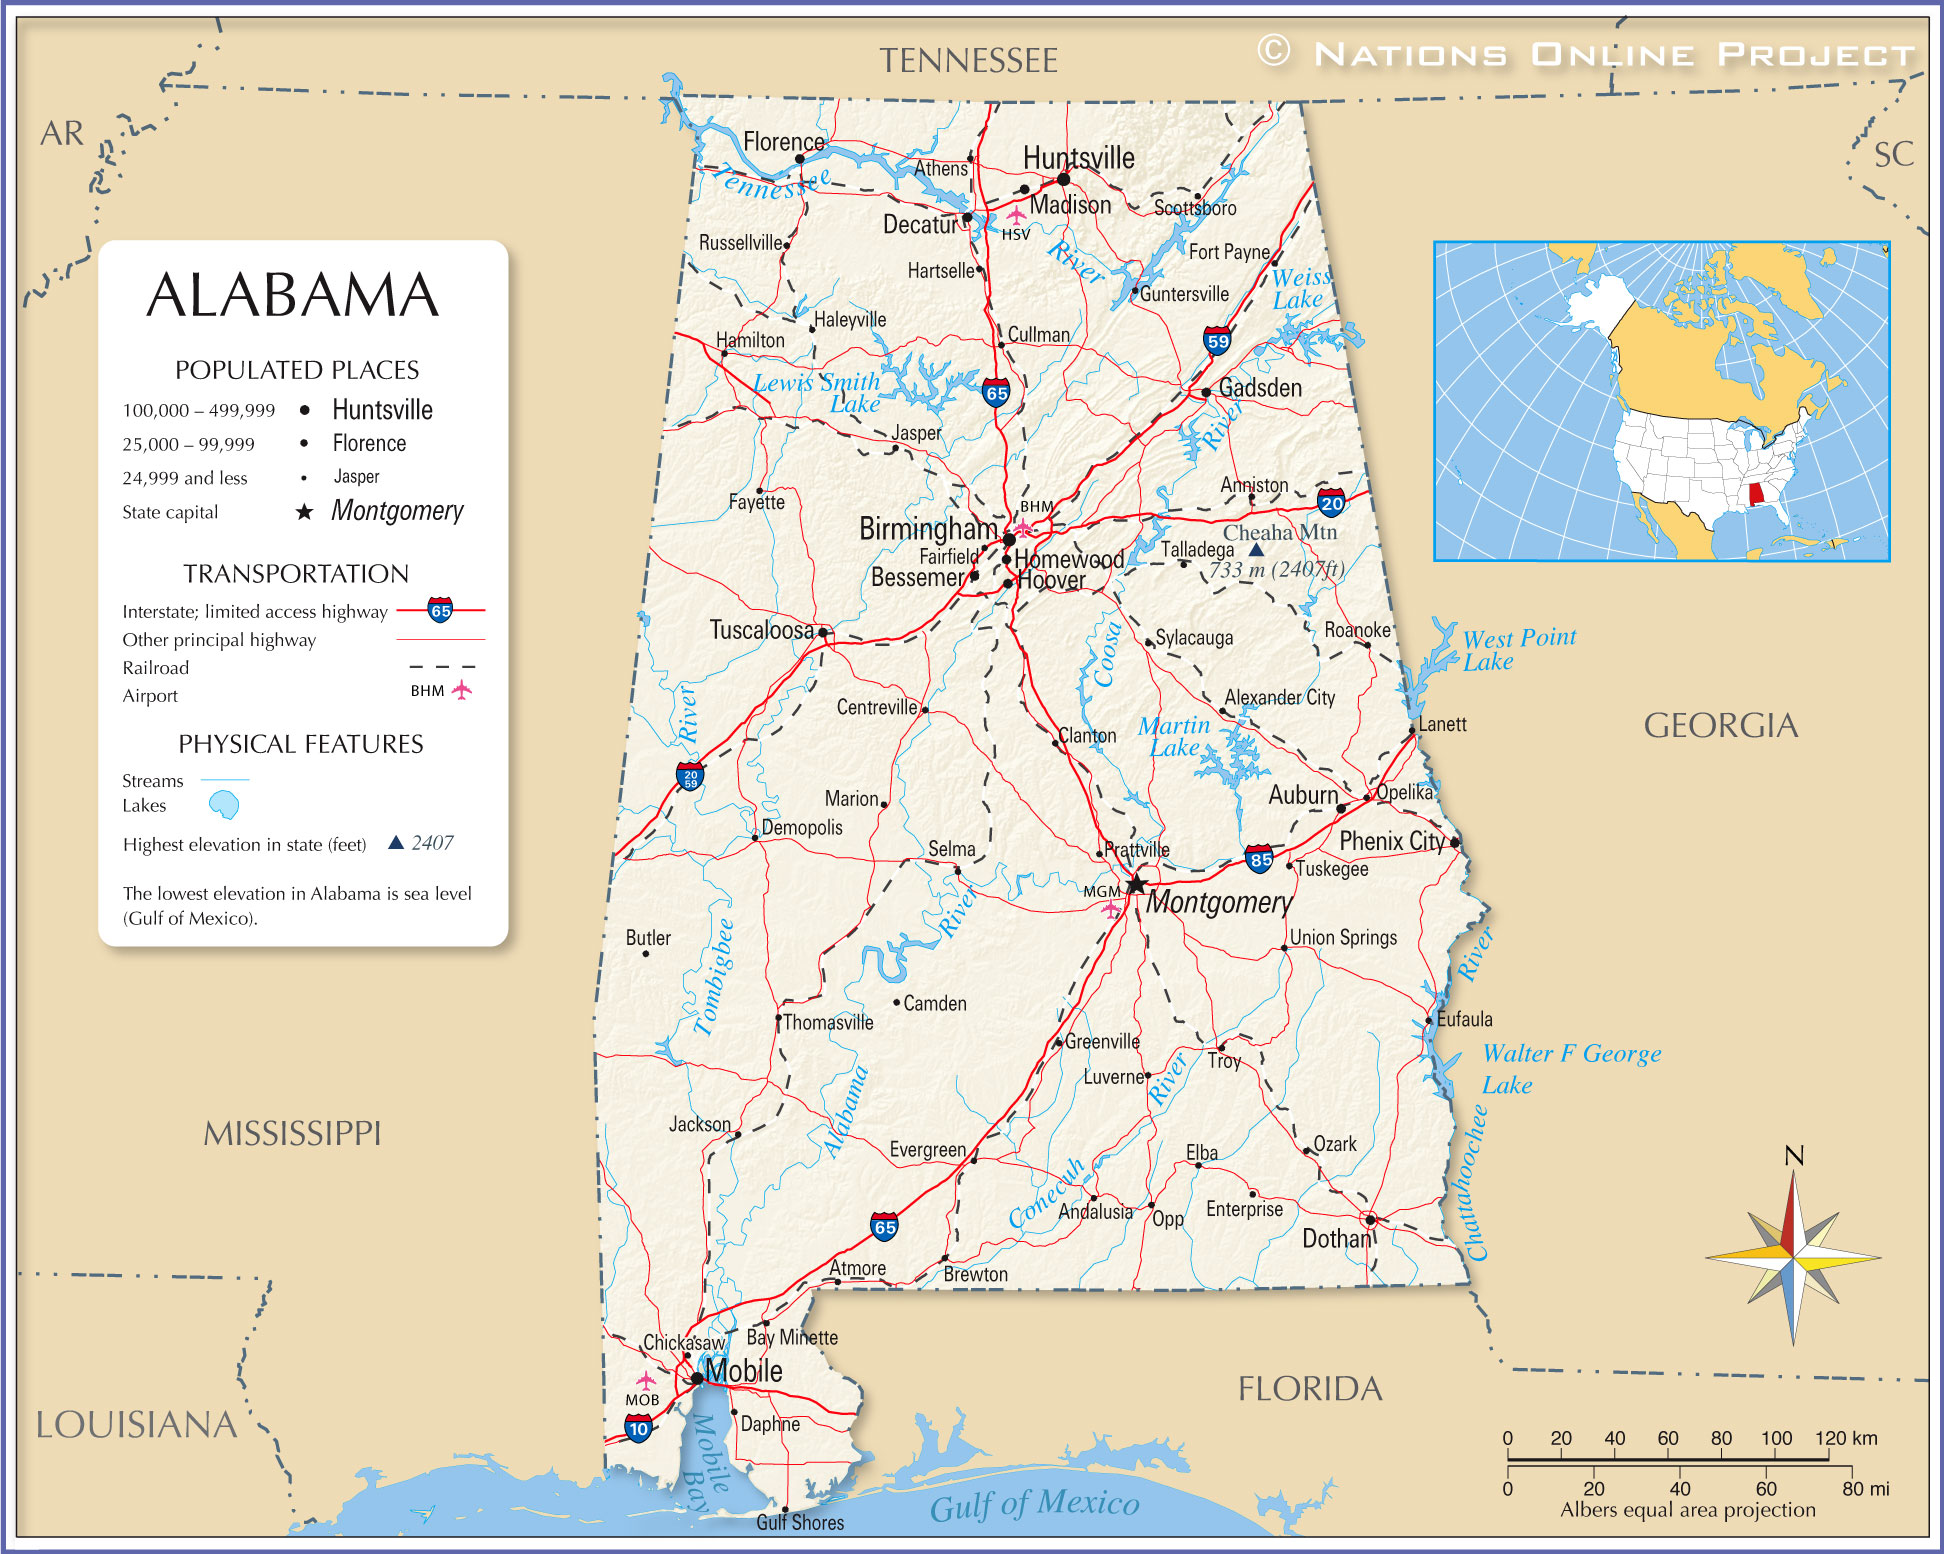 Reference Map Of Alabama USA Nations Online Project - Alabama map usa